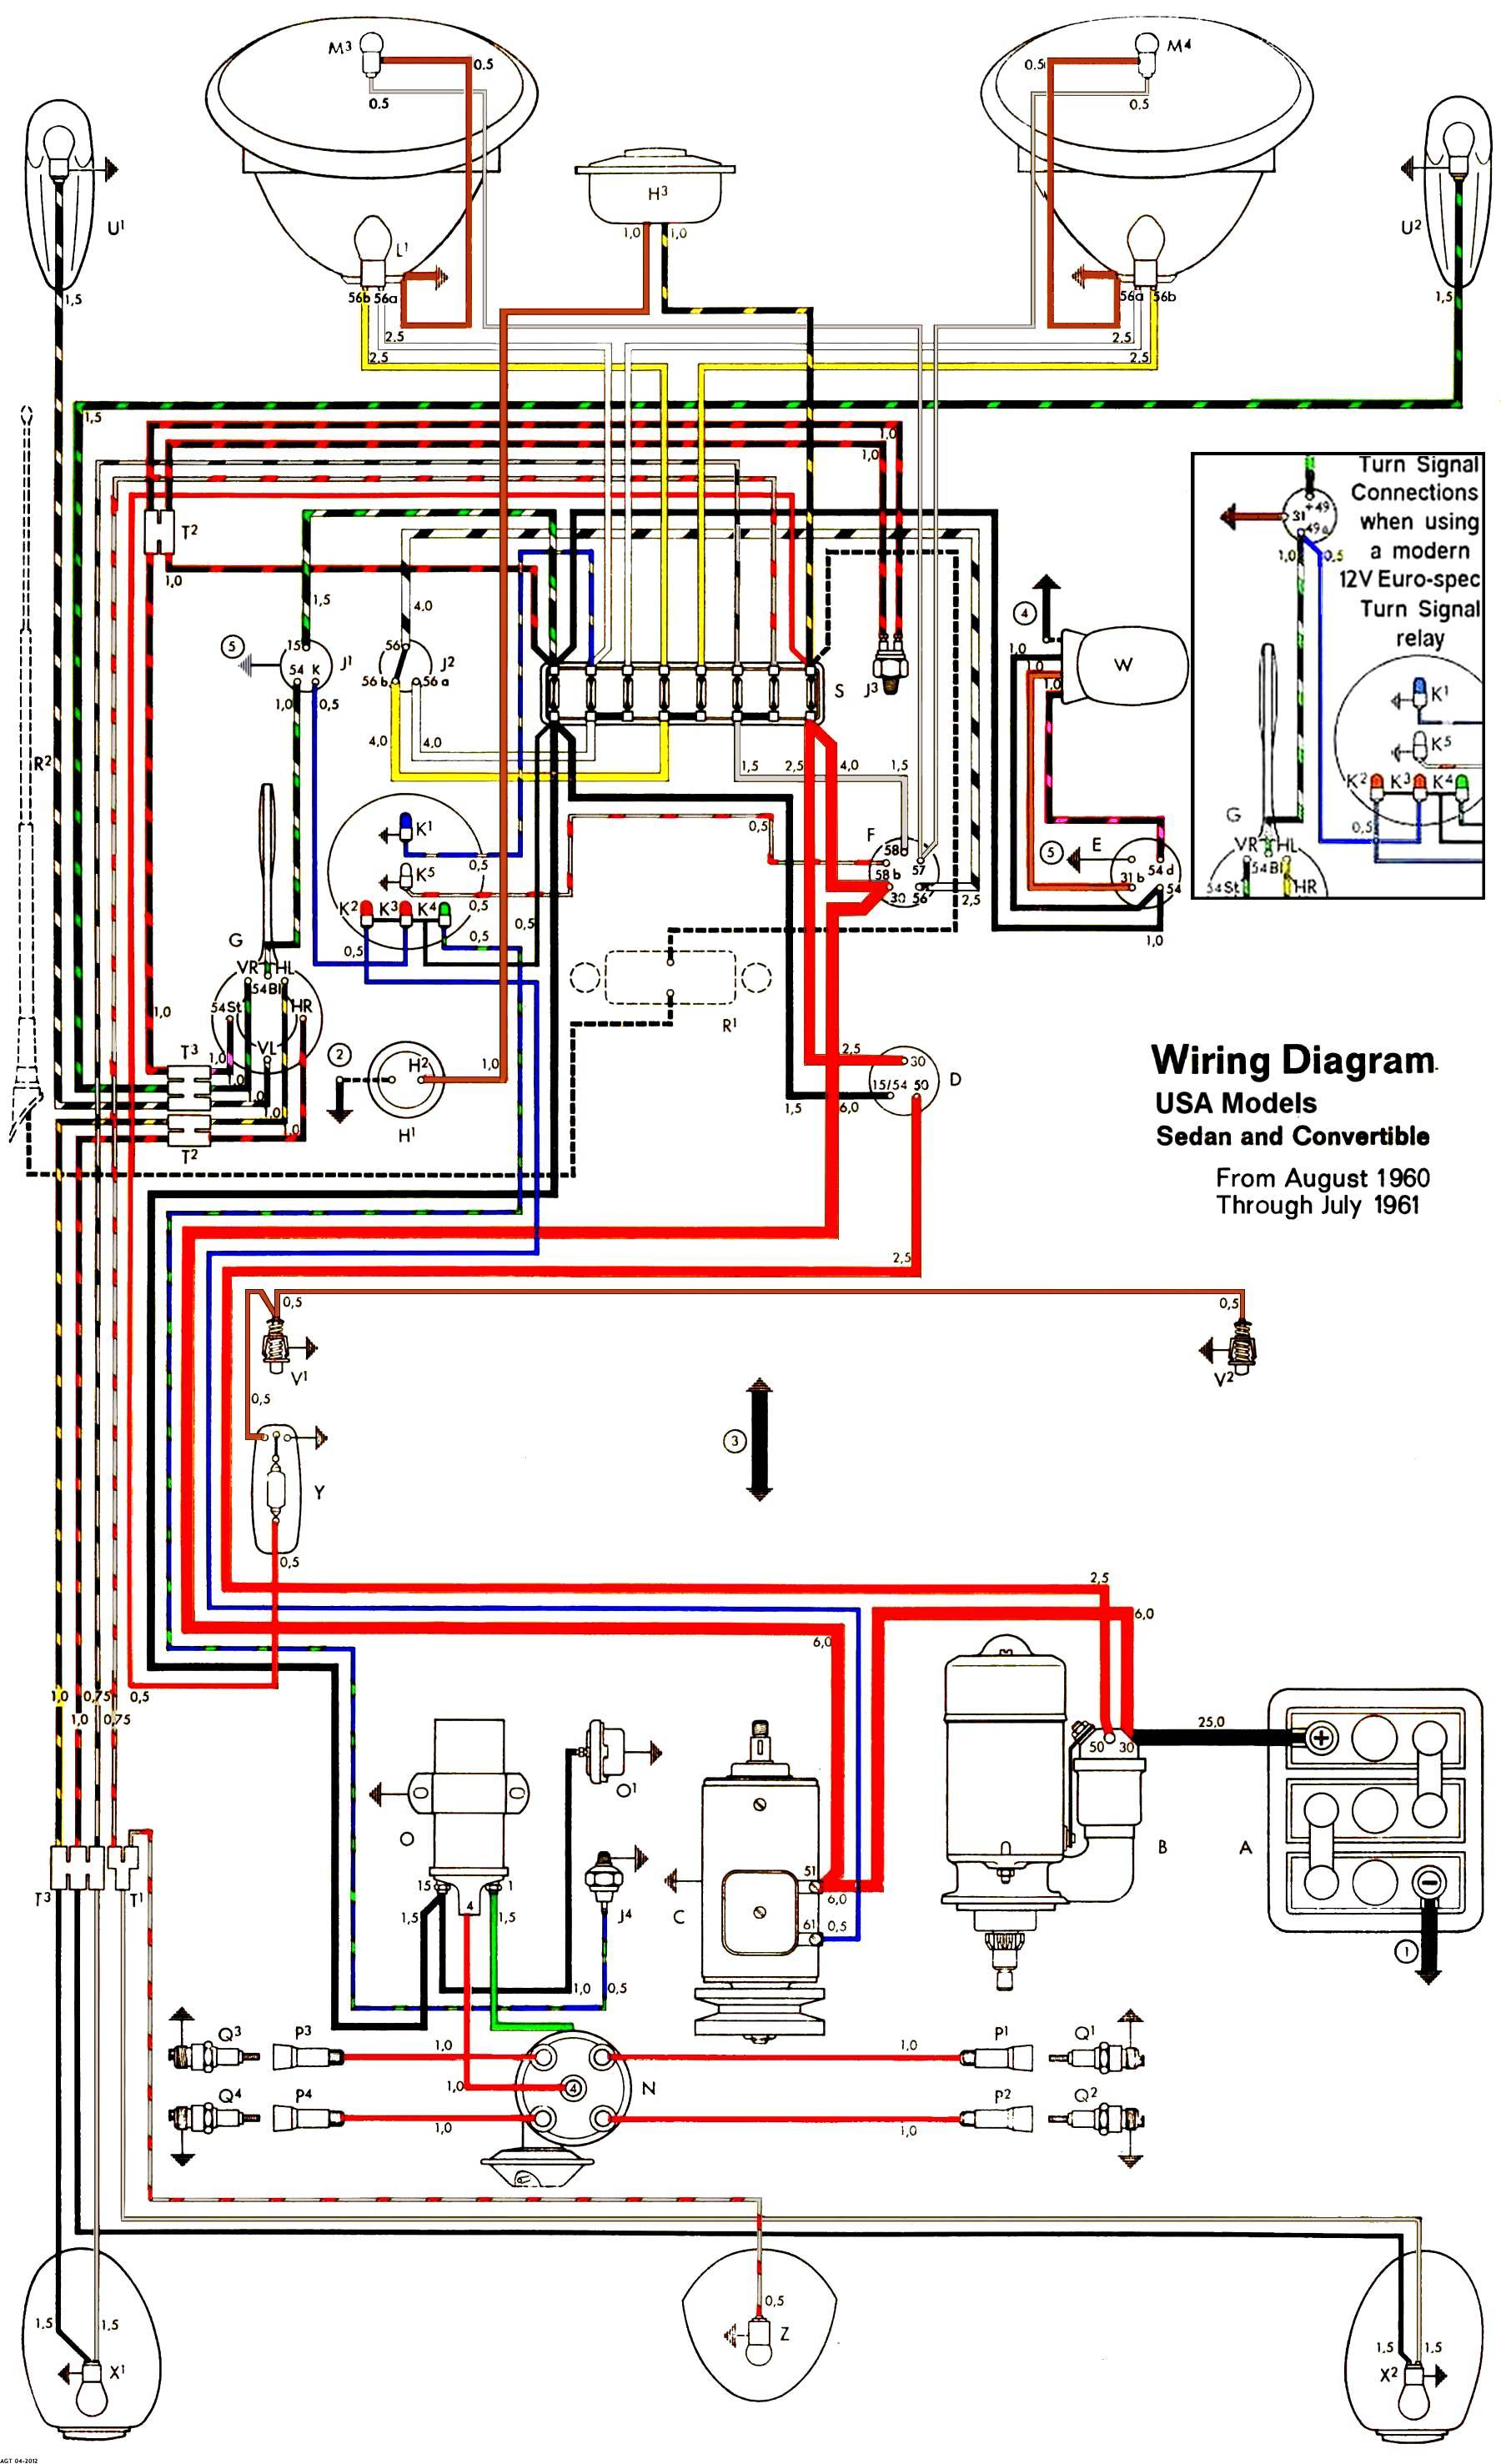 small resolution of t1 circuit wiring diagram wiring diagram sonoff t1 wiring diagram t1 circuit wiring diagram